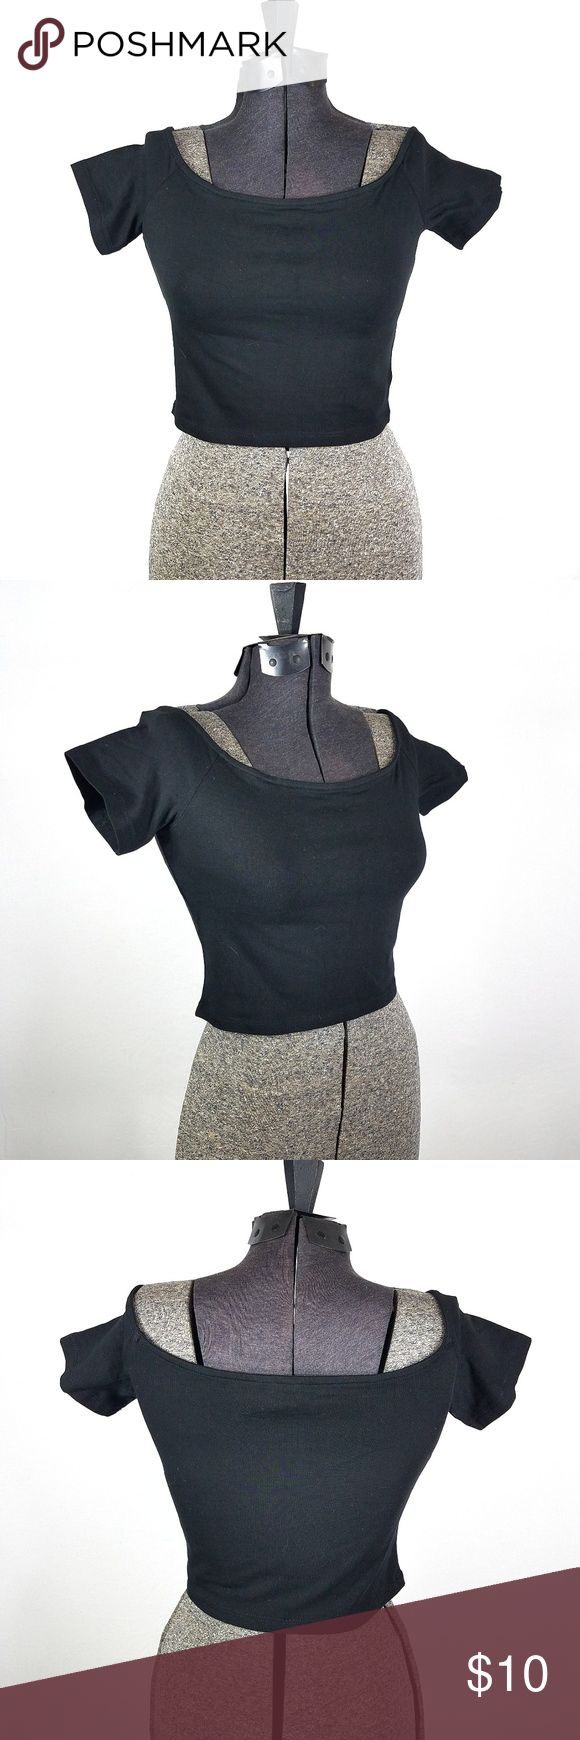 "H&M Divided Crop Top Short Sleeve Black Cotton S H&M Divided Size Small Cotton Blend Great preowned condition with no holes or stains  This crop top from H&M is super cute and very comfortable. It features short sleeves and a scoop neckline, almost off the shoulders.   Measurements laying flat: Length:13""  Bust:15""  Waist:13""  Sleeve:4"" H&M Tops Crop Tops"